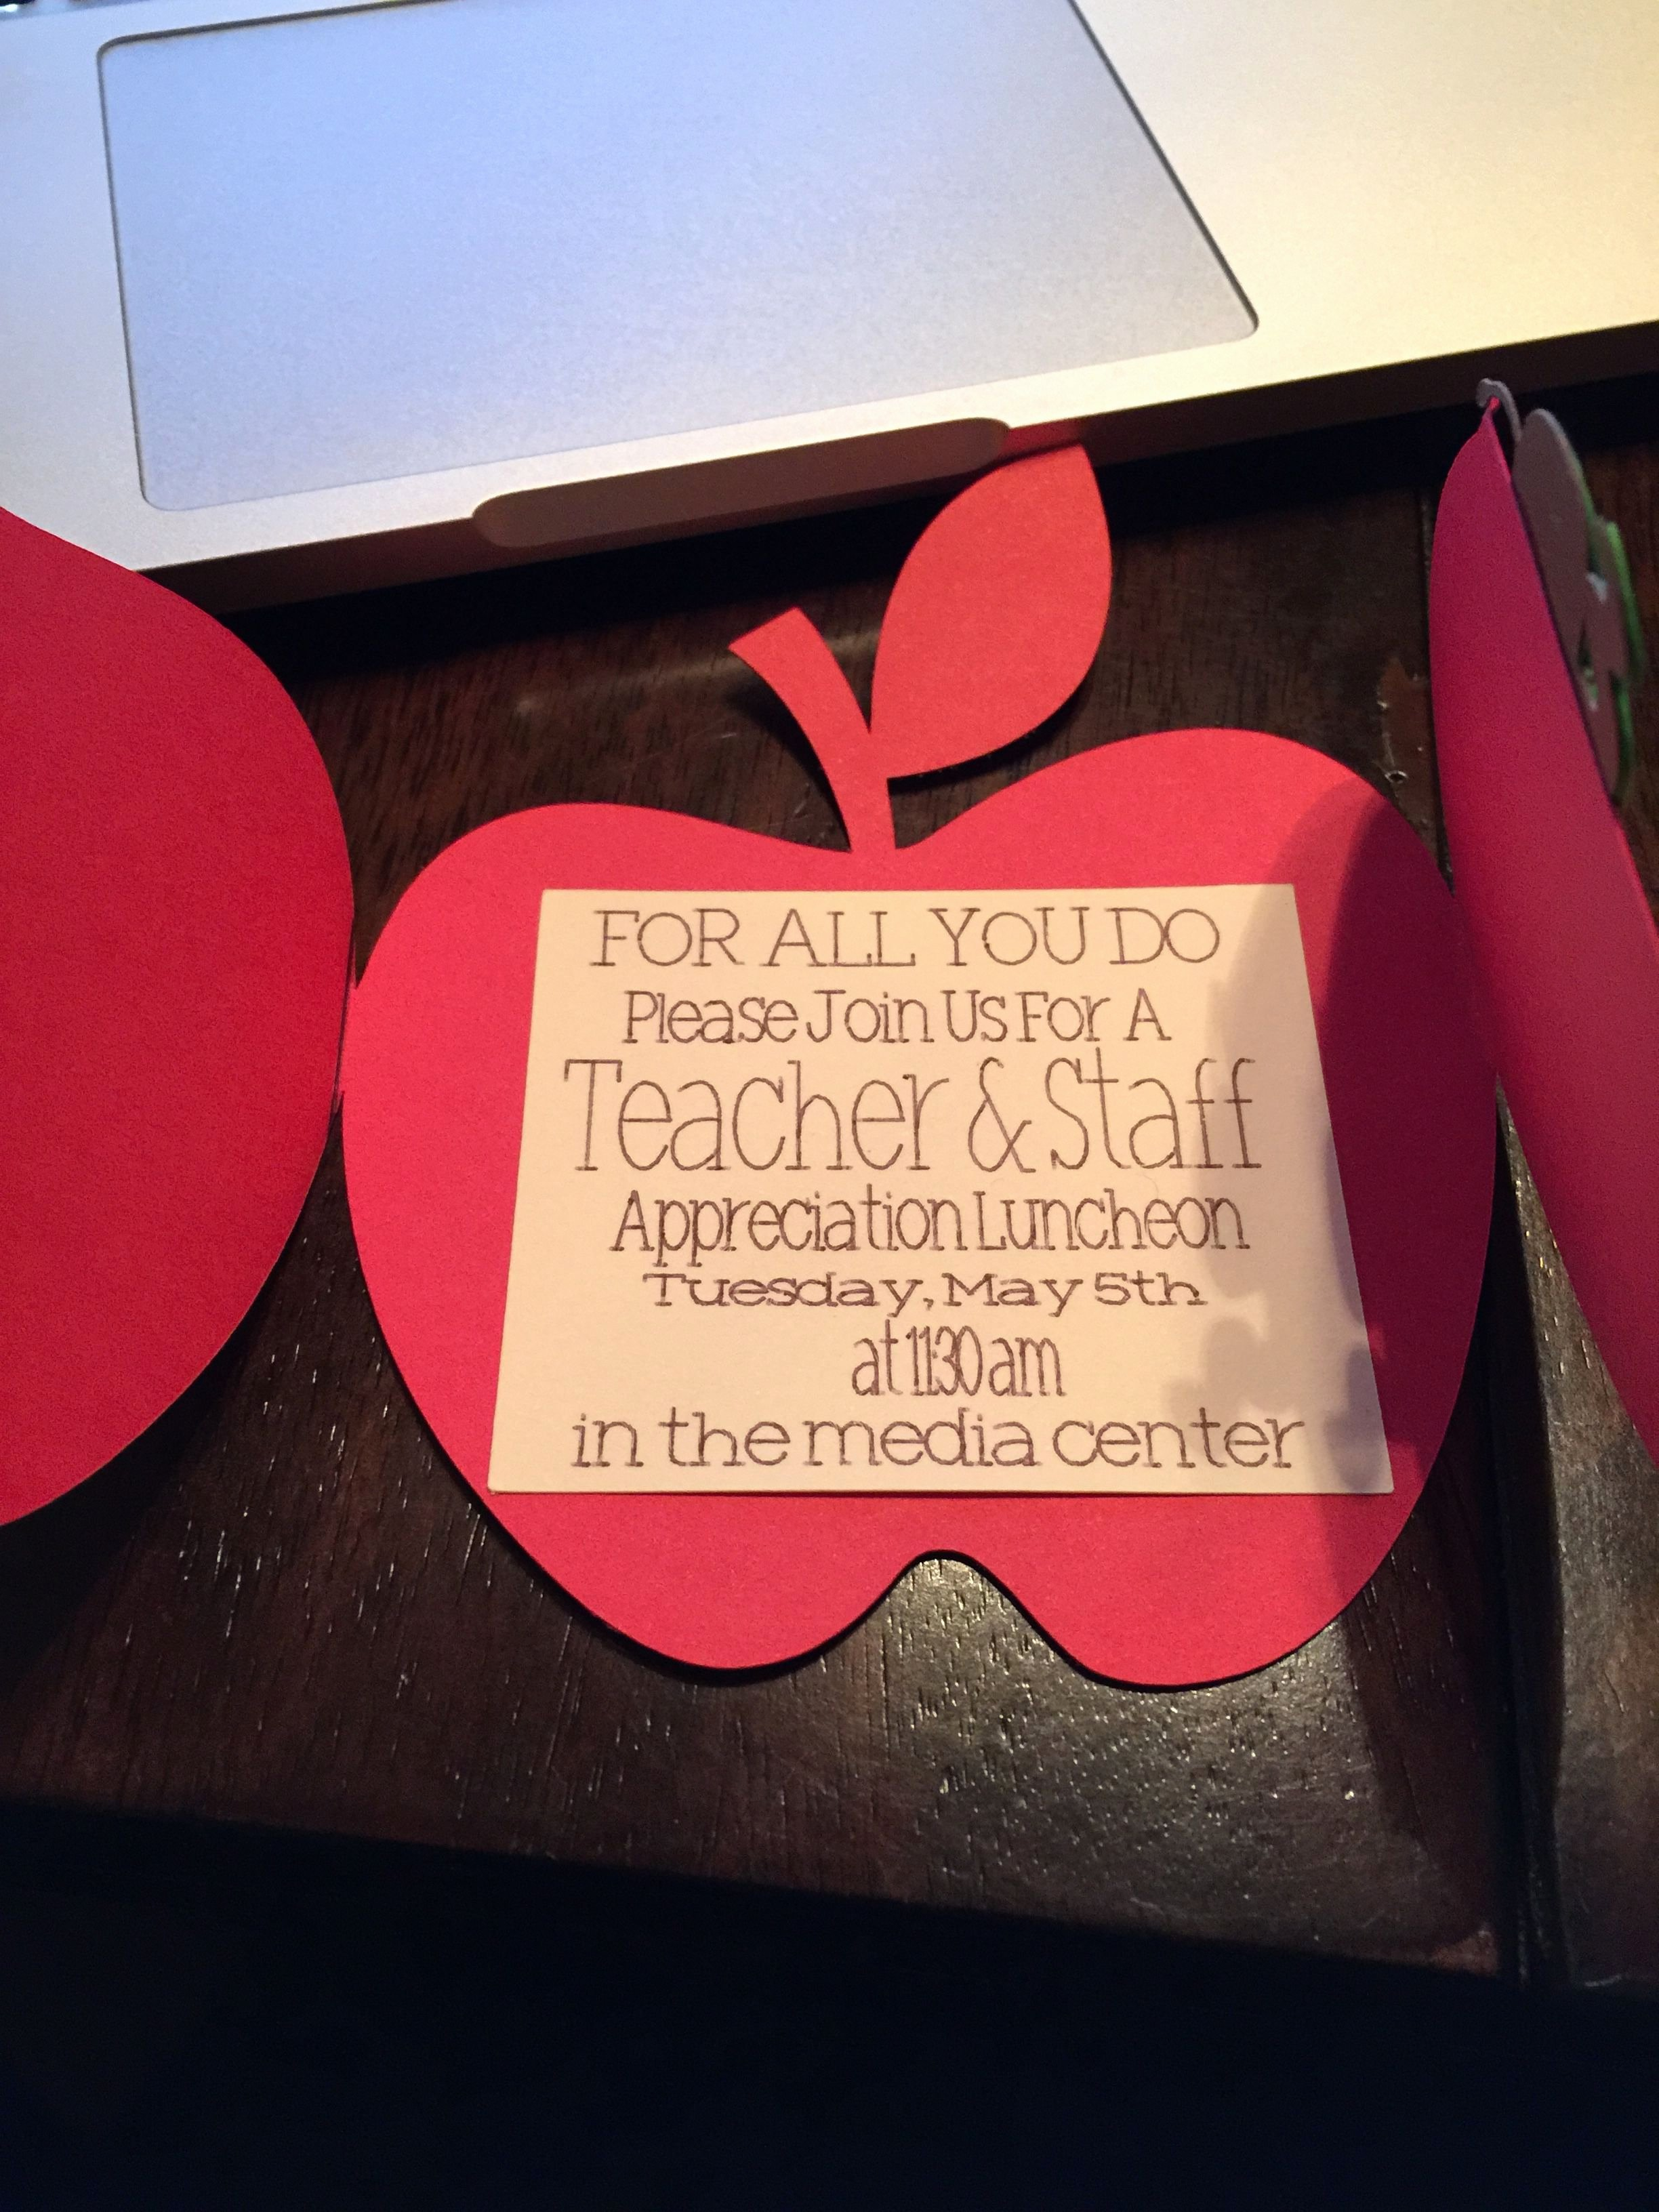 Teacher Appreciation Luncheon Invitation Fresh Teacher Appreciation Luncheon Invite 2015